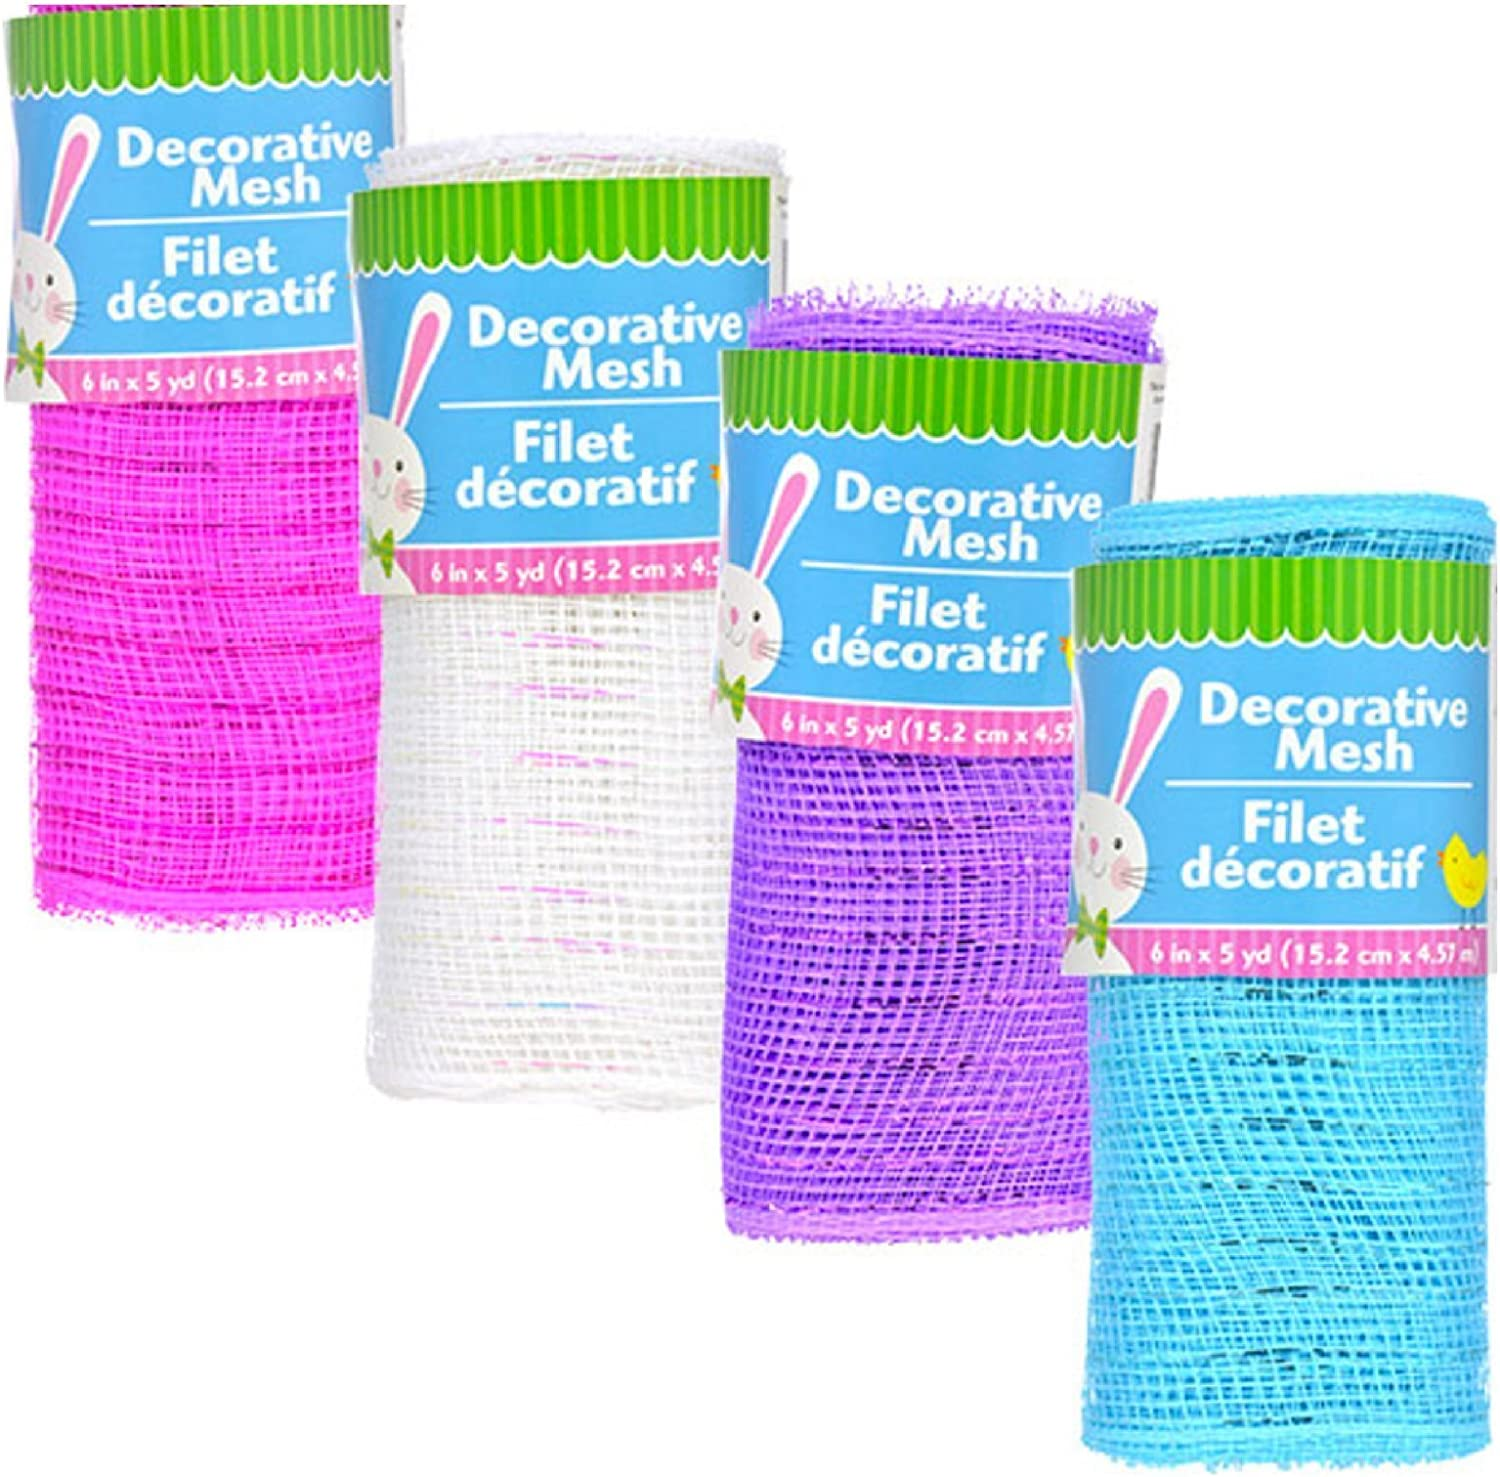 Decorative Mesh Rolls for Crafting Wreaths, Centerpieces, Displays, Table Drape and More, 5 Yards (4 Rolls, Fushshia, Purple, White, Blue)